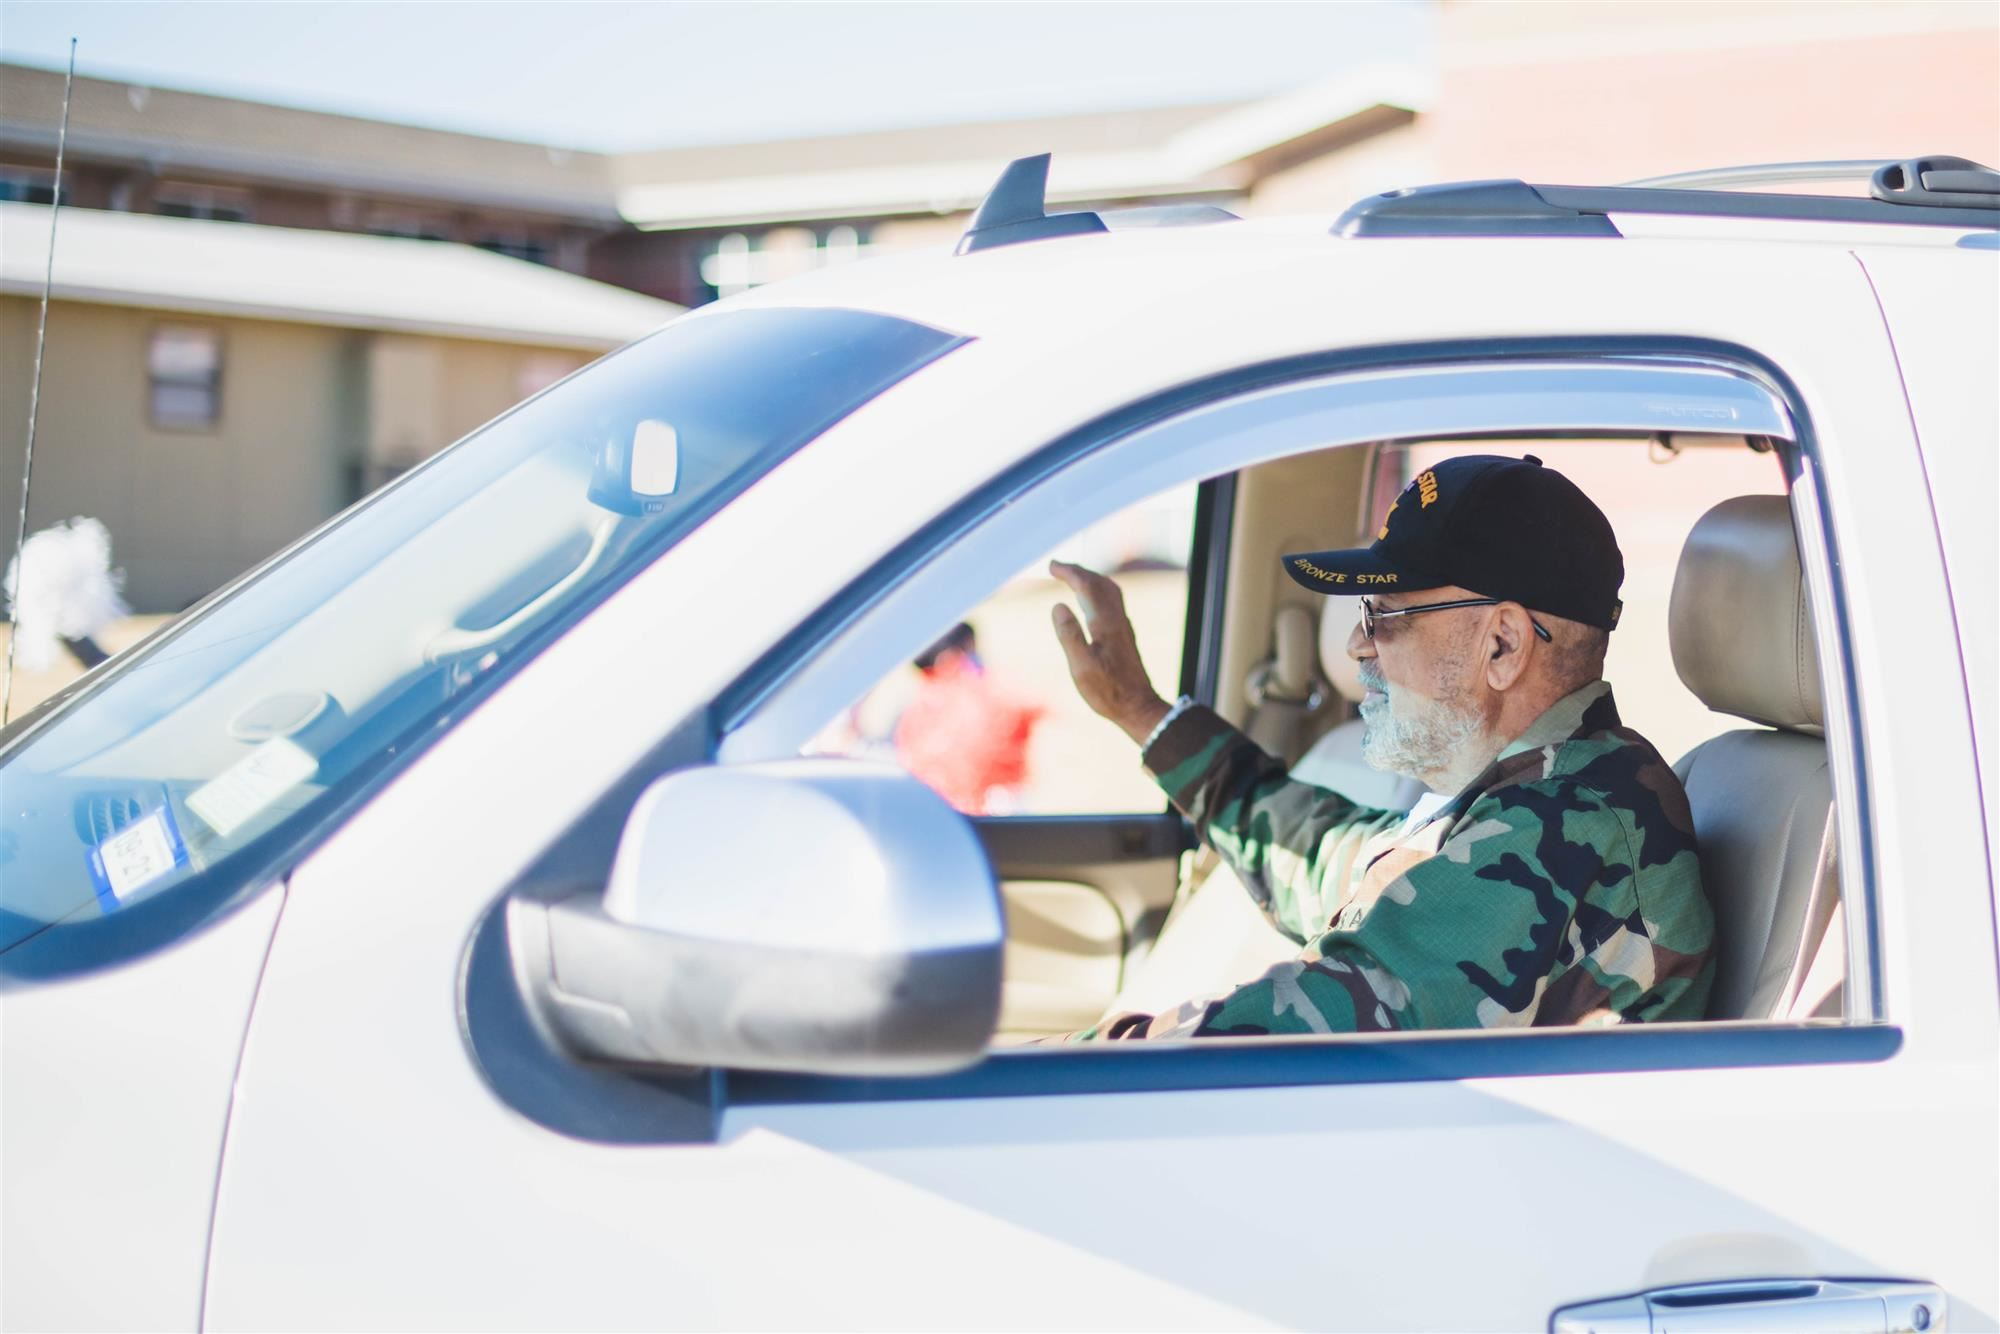 Veterans waves from vehicle during drive-thru parade.